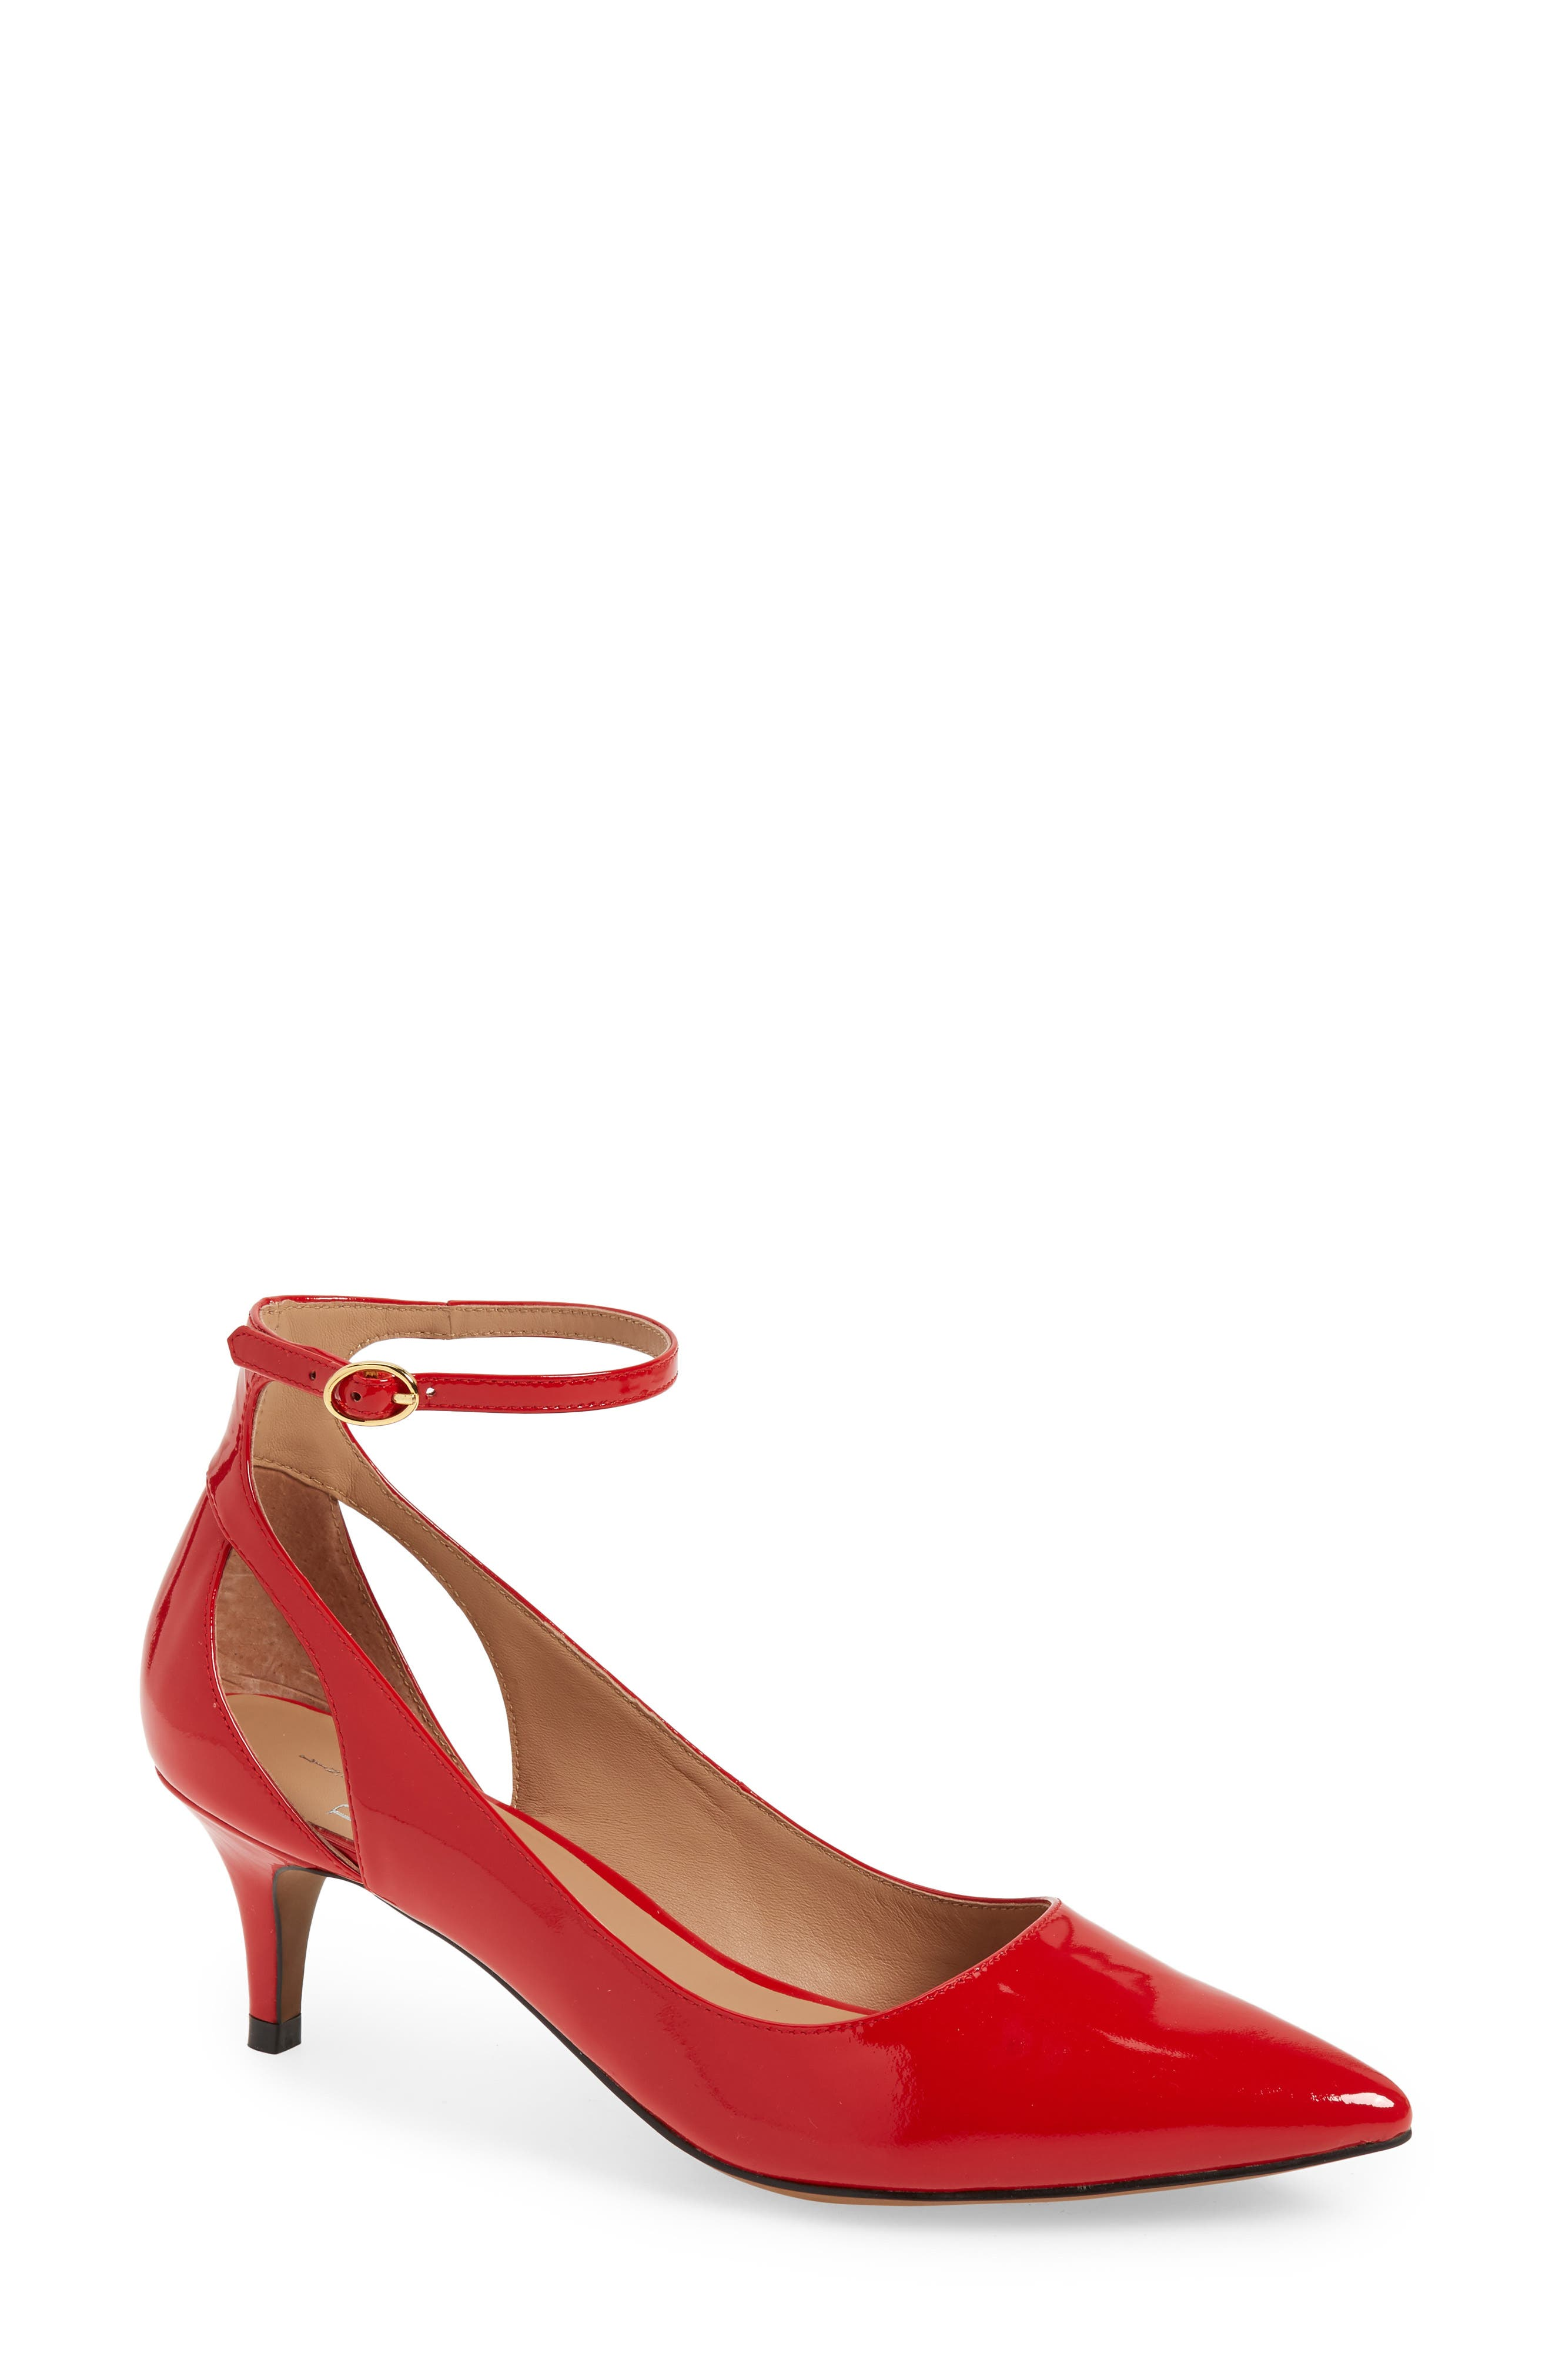 Linea Paolo Carrie Ankle Strap Pump, Red